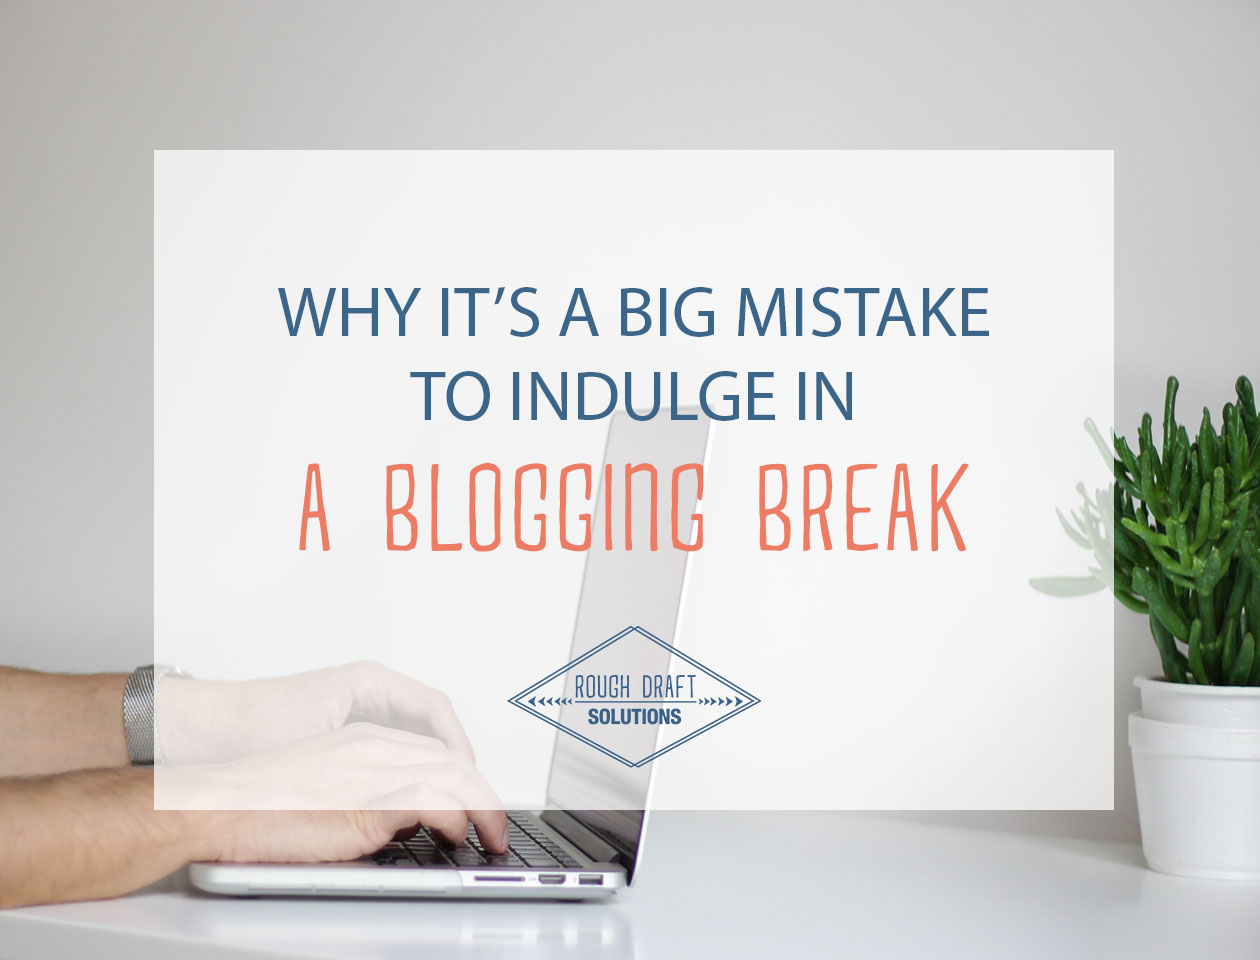 Why it's a Big Mistake to Indulge in a Blogging Break